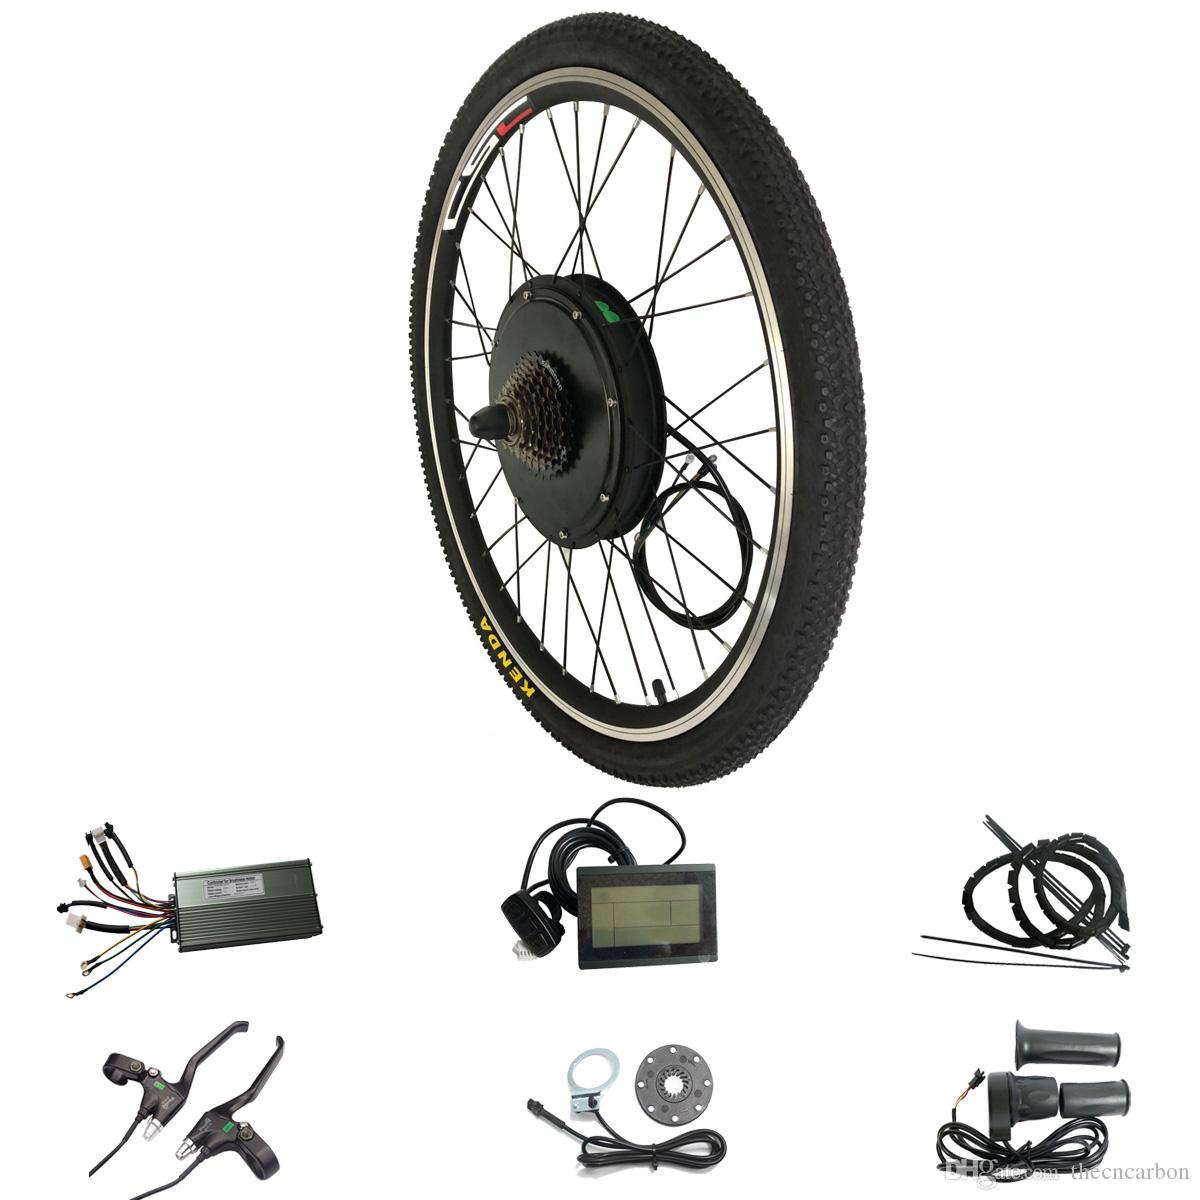 48V 1500W LCD Display Electric eBike Kit for 20 24 26 700C 28 29inch Rear Bicycle Wheel Motor Electric Bike Conversion Kit